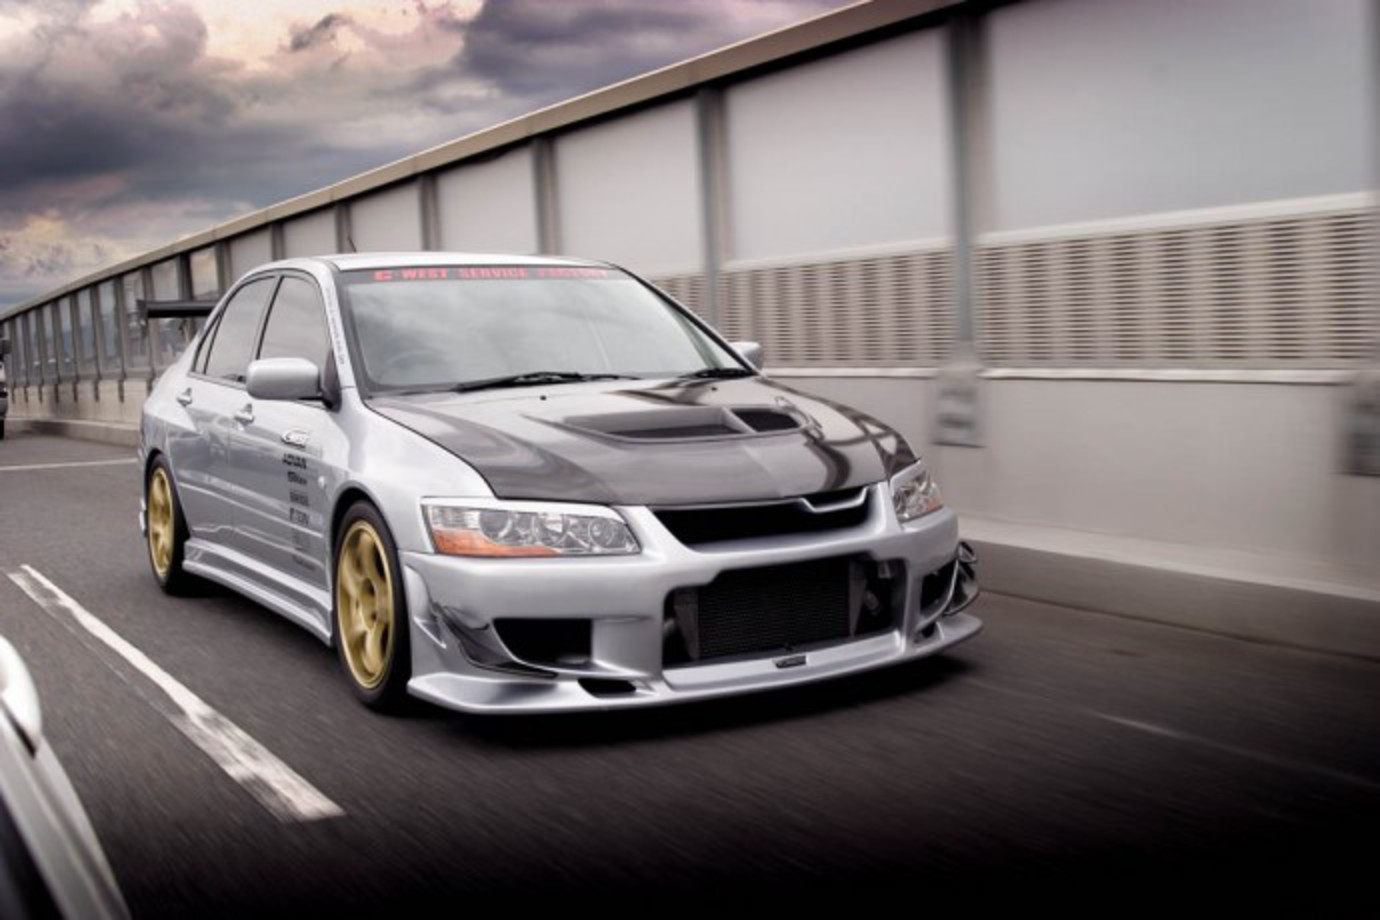 Mitsubishi Lancer EVO 7 NZPC 114 fq dyn. Touge drifters punting their slide